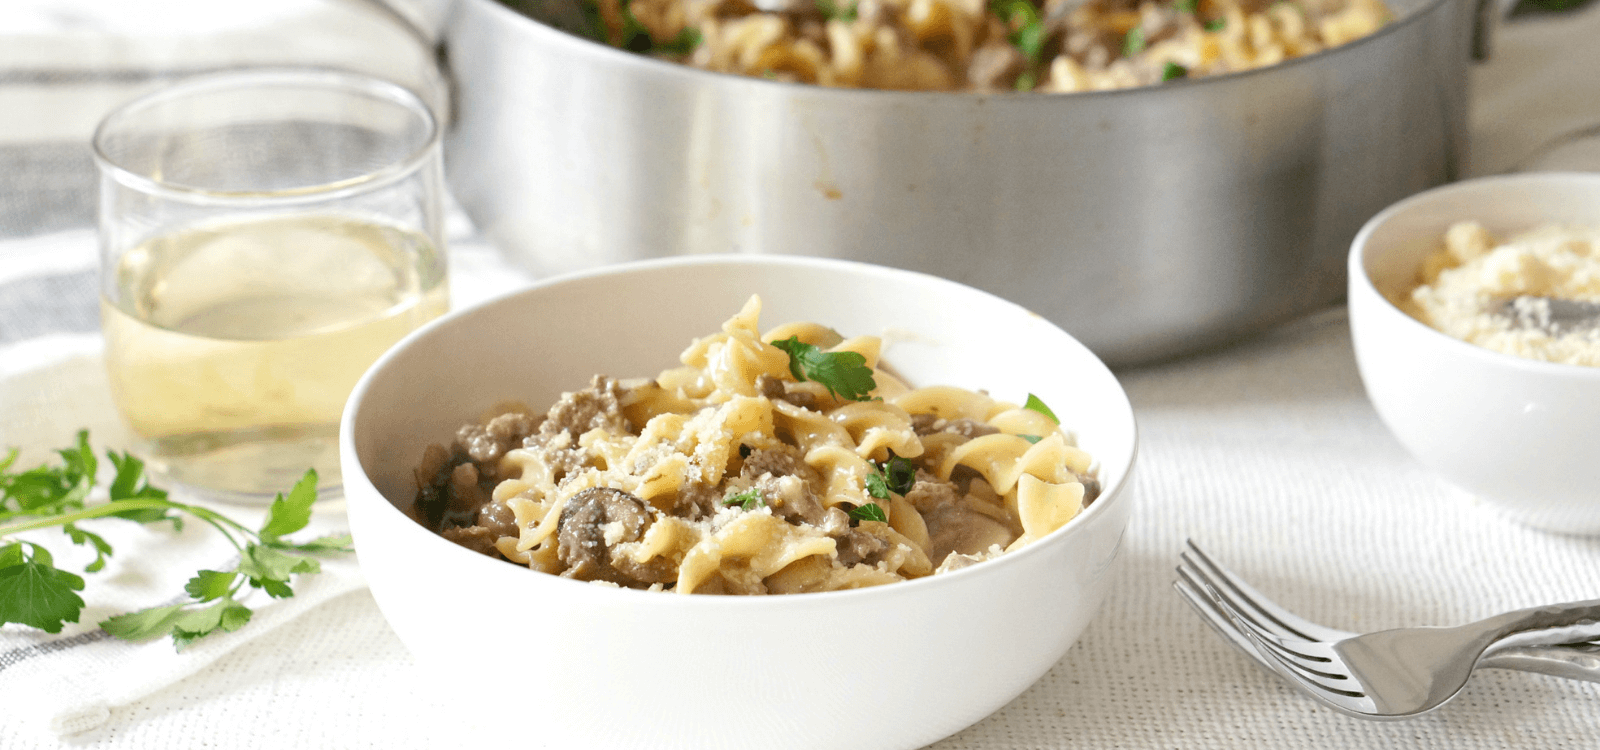 One Pot Beef and Mushroom Stroganoff Recipe